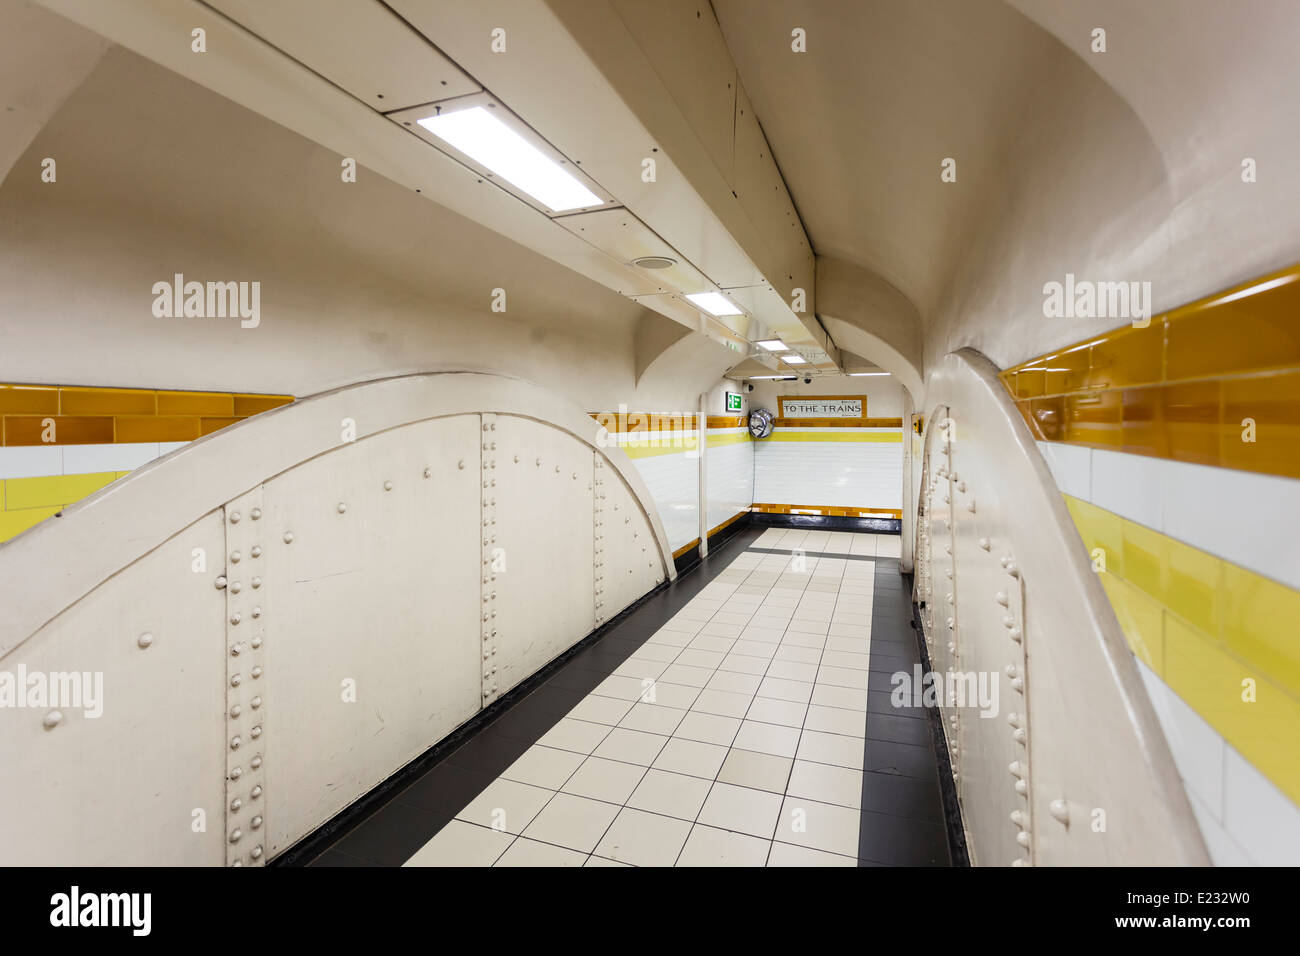 Subway Tunnel in London, UK - Stock Image